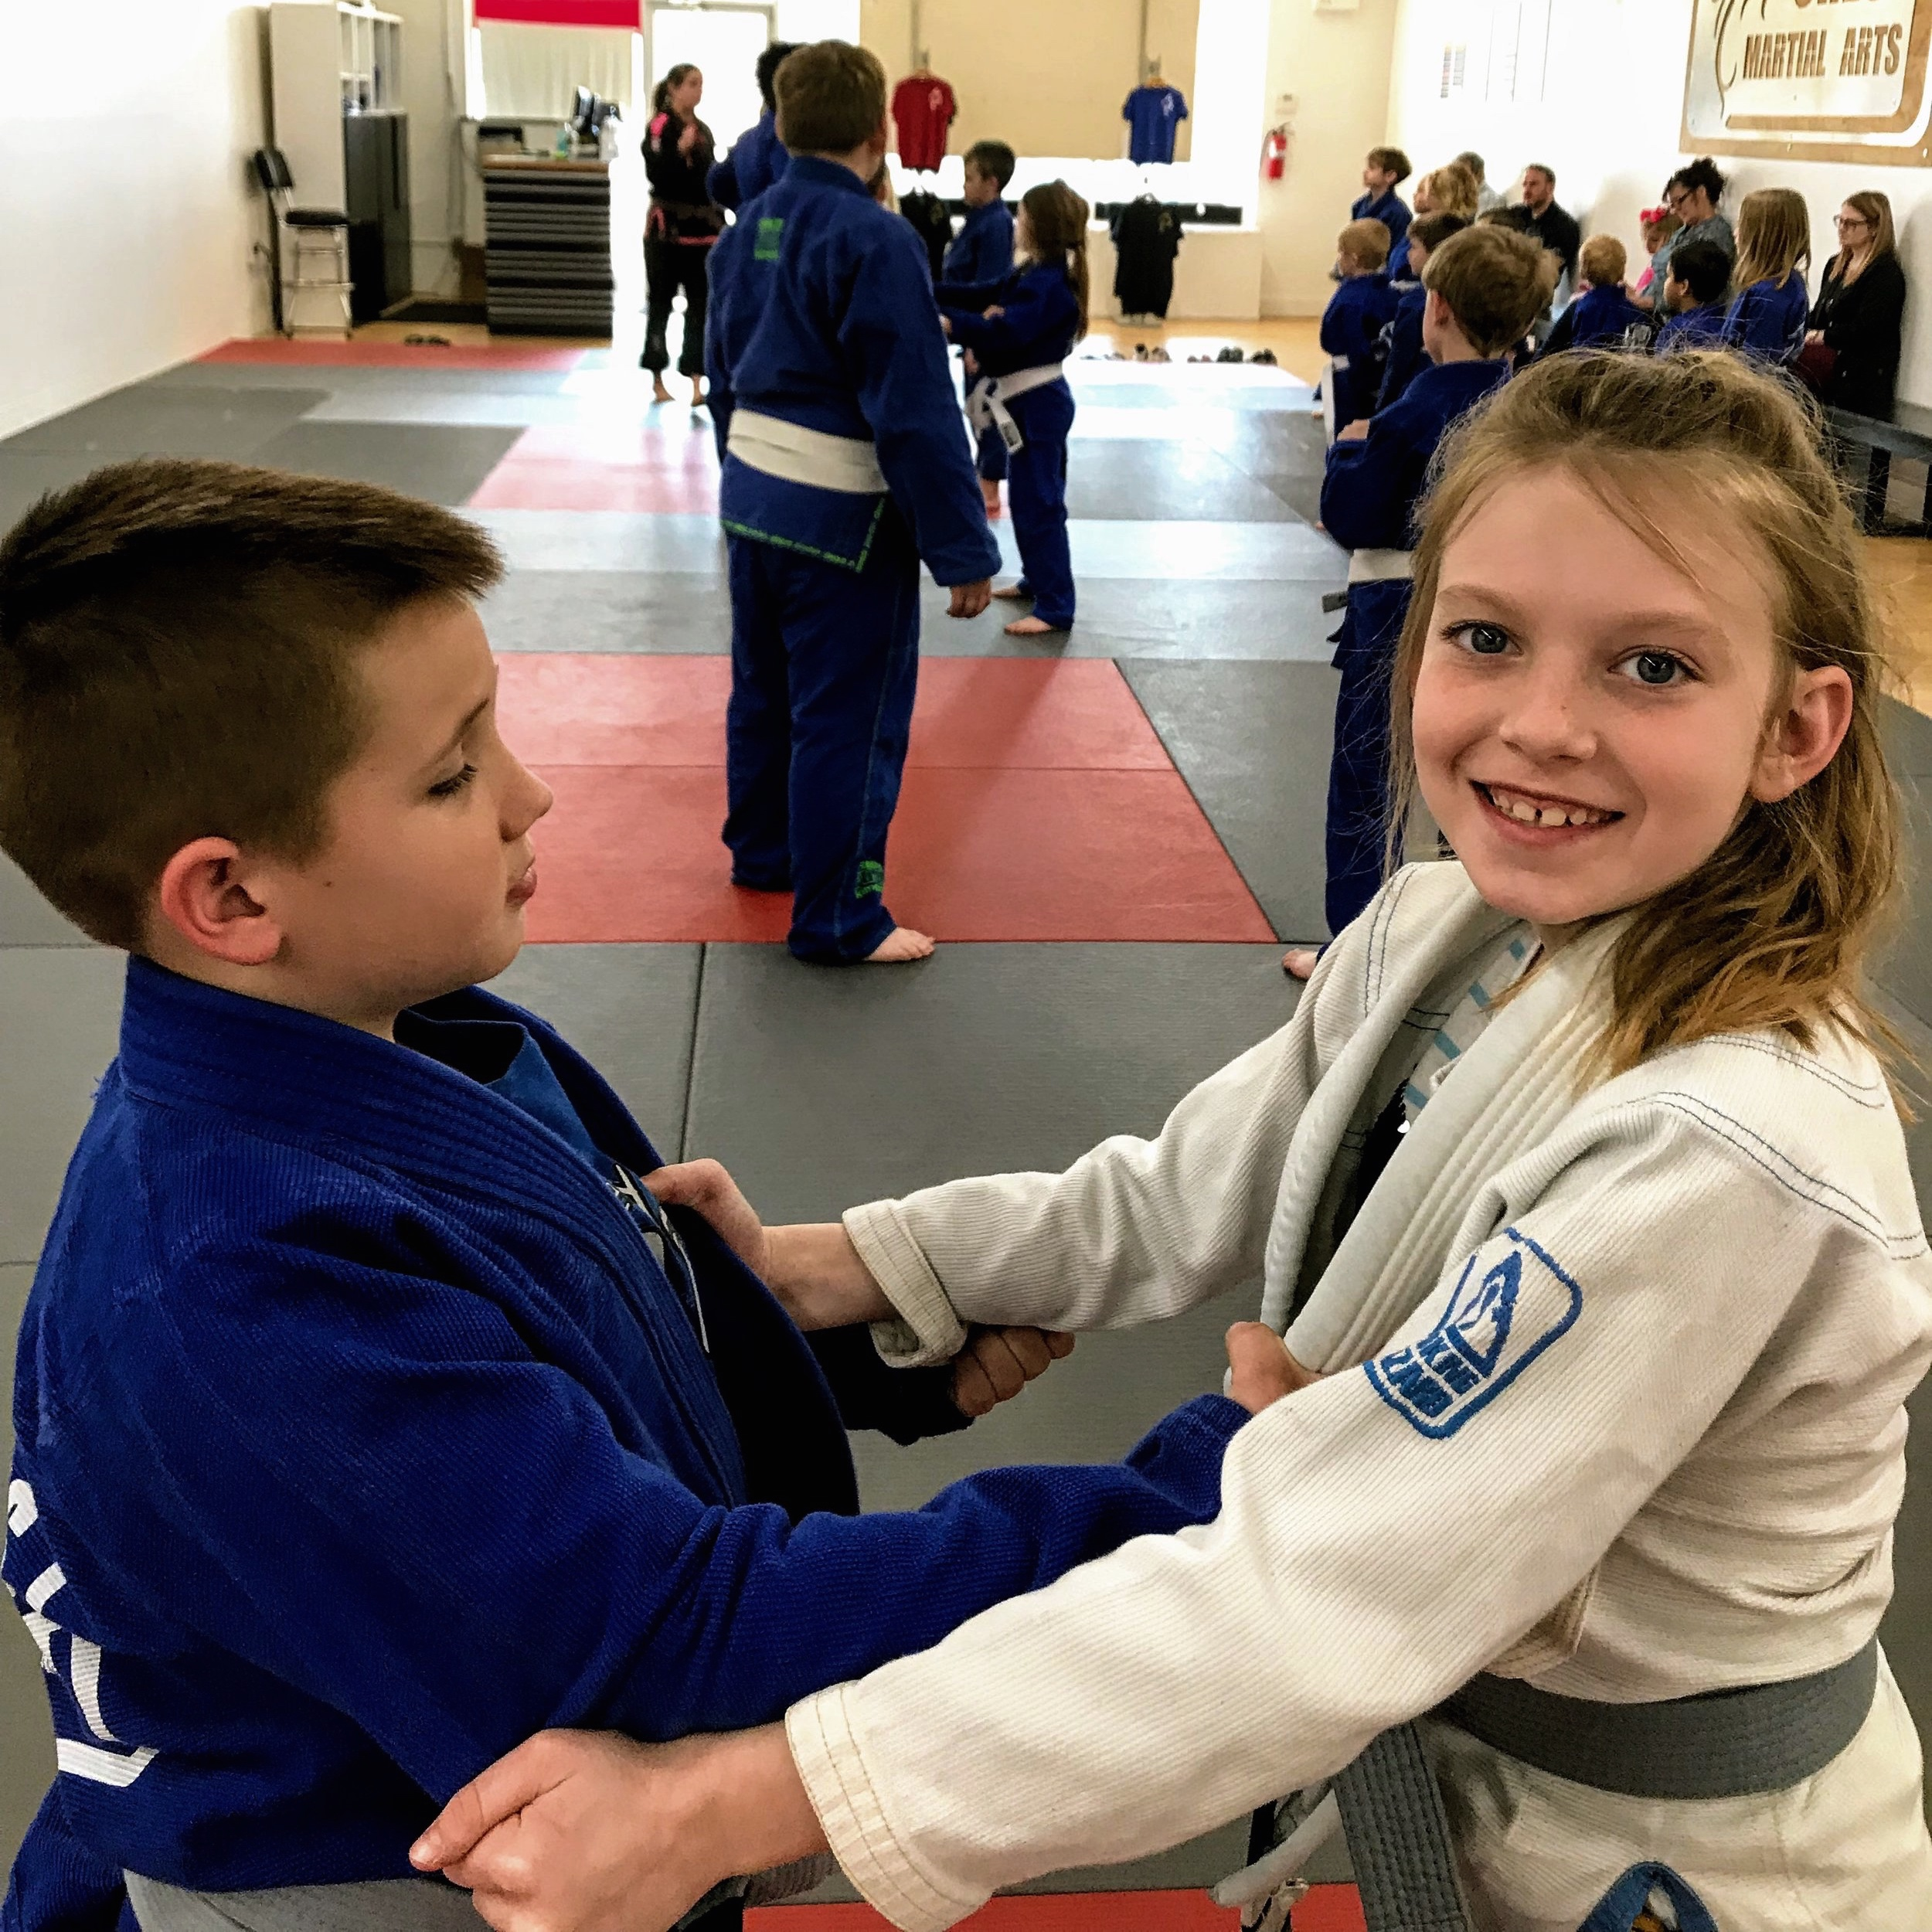 KIDS CLASSES - KARATE + BRAZILIAN JIU JITSU